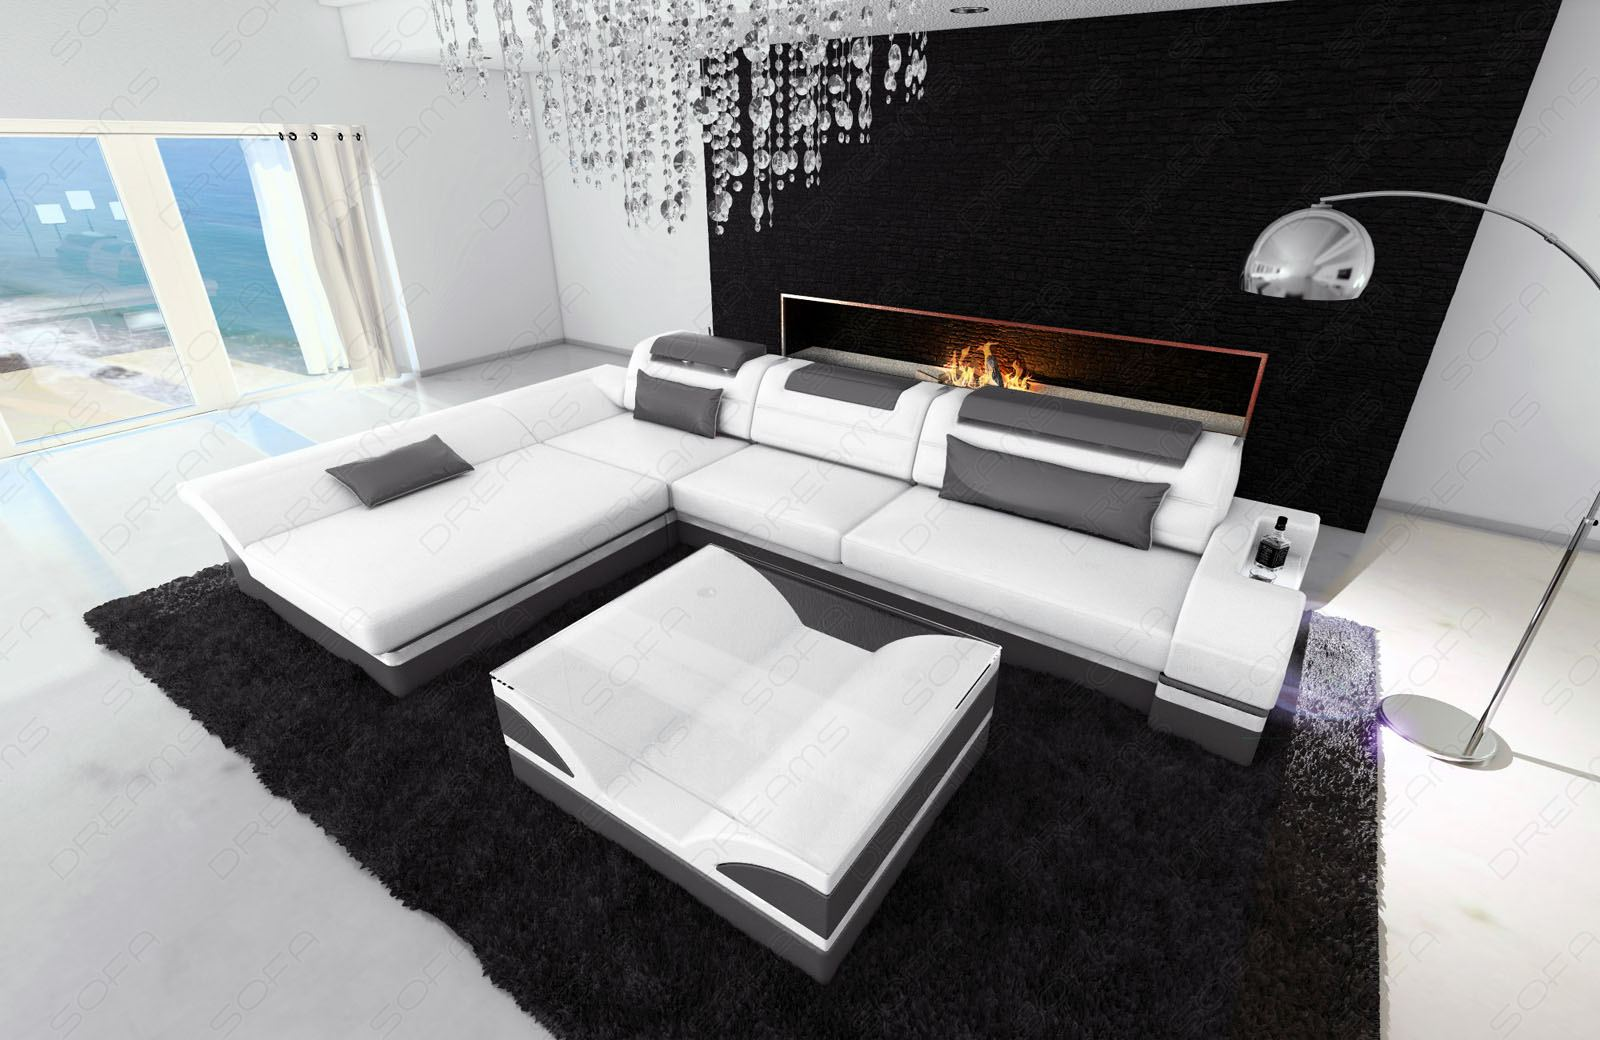 ledersofa design monza l form weiss grau mit led beleuchtung ebay. Black Bedroom Furniture Sets. Home Design Ideas